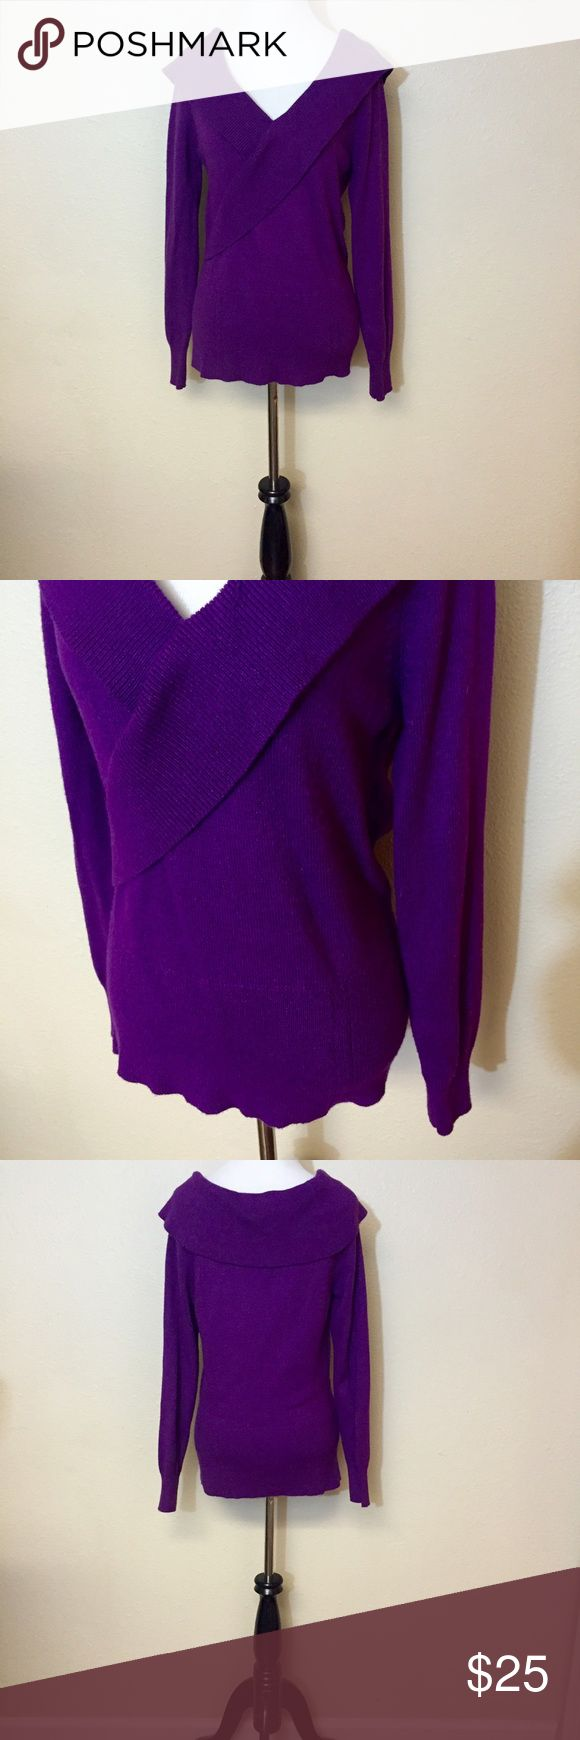 Gorgeous purple sweater | Bright purple, White house black and ...